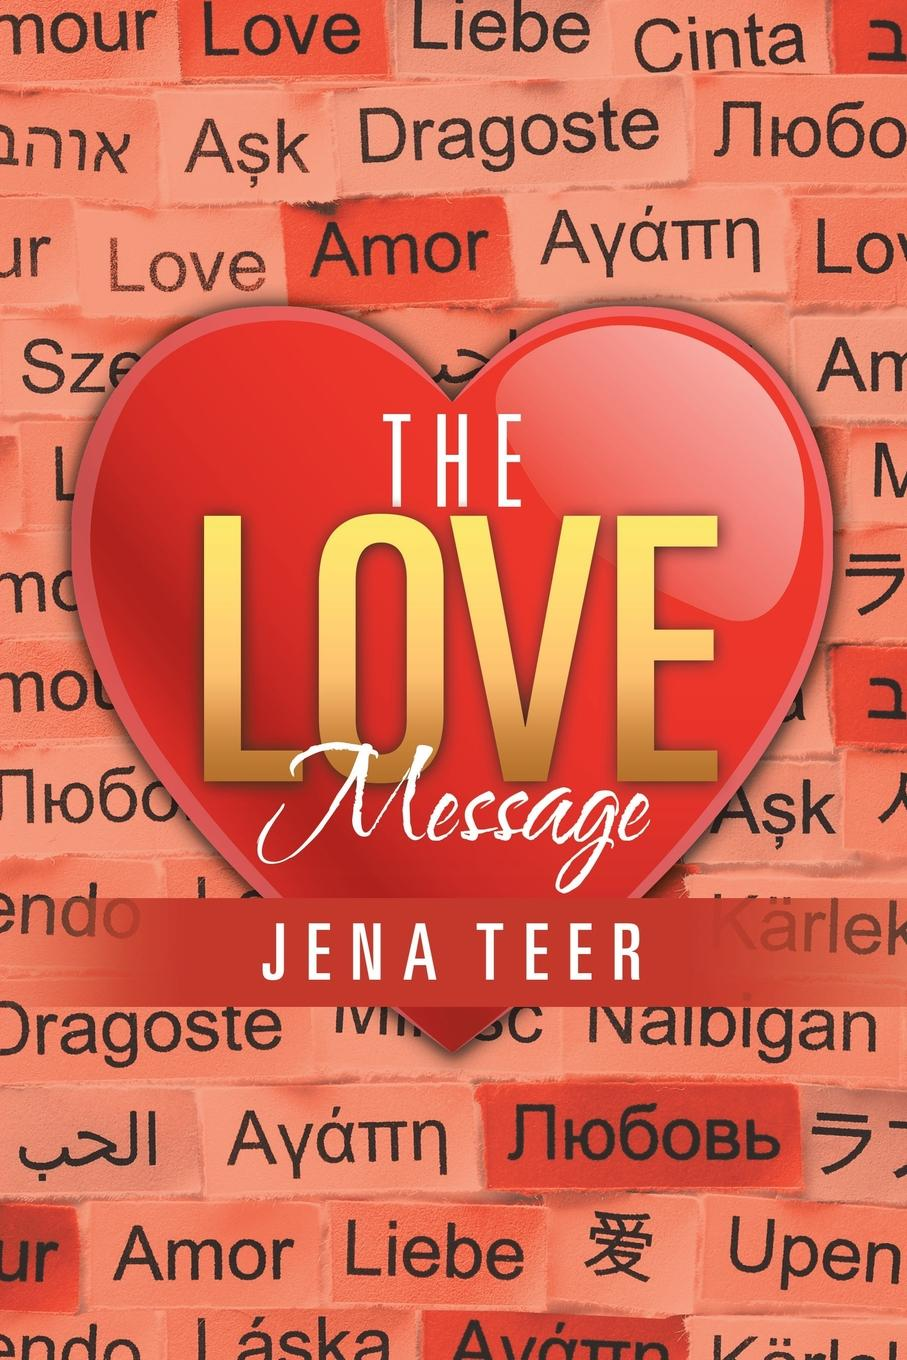 Jena Teer The Love Message shakespeare s words of wisdom panorama pops